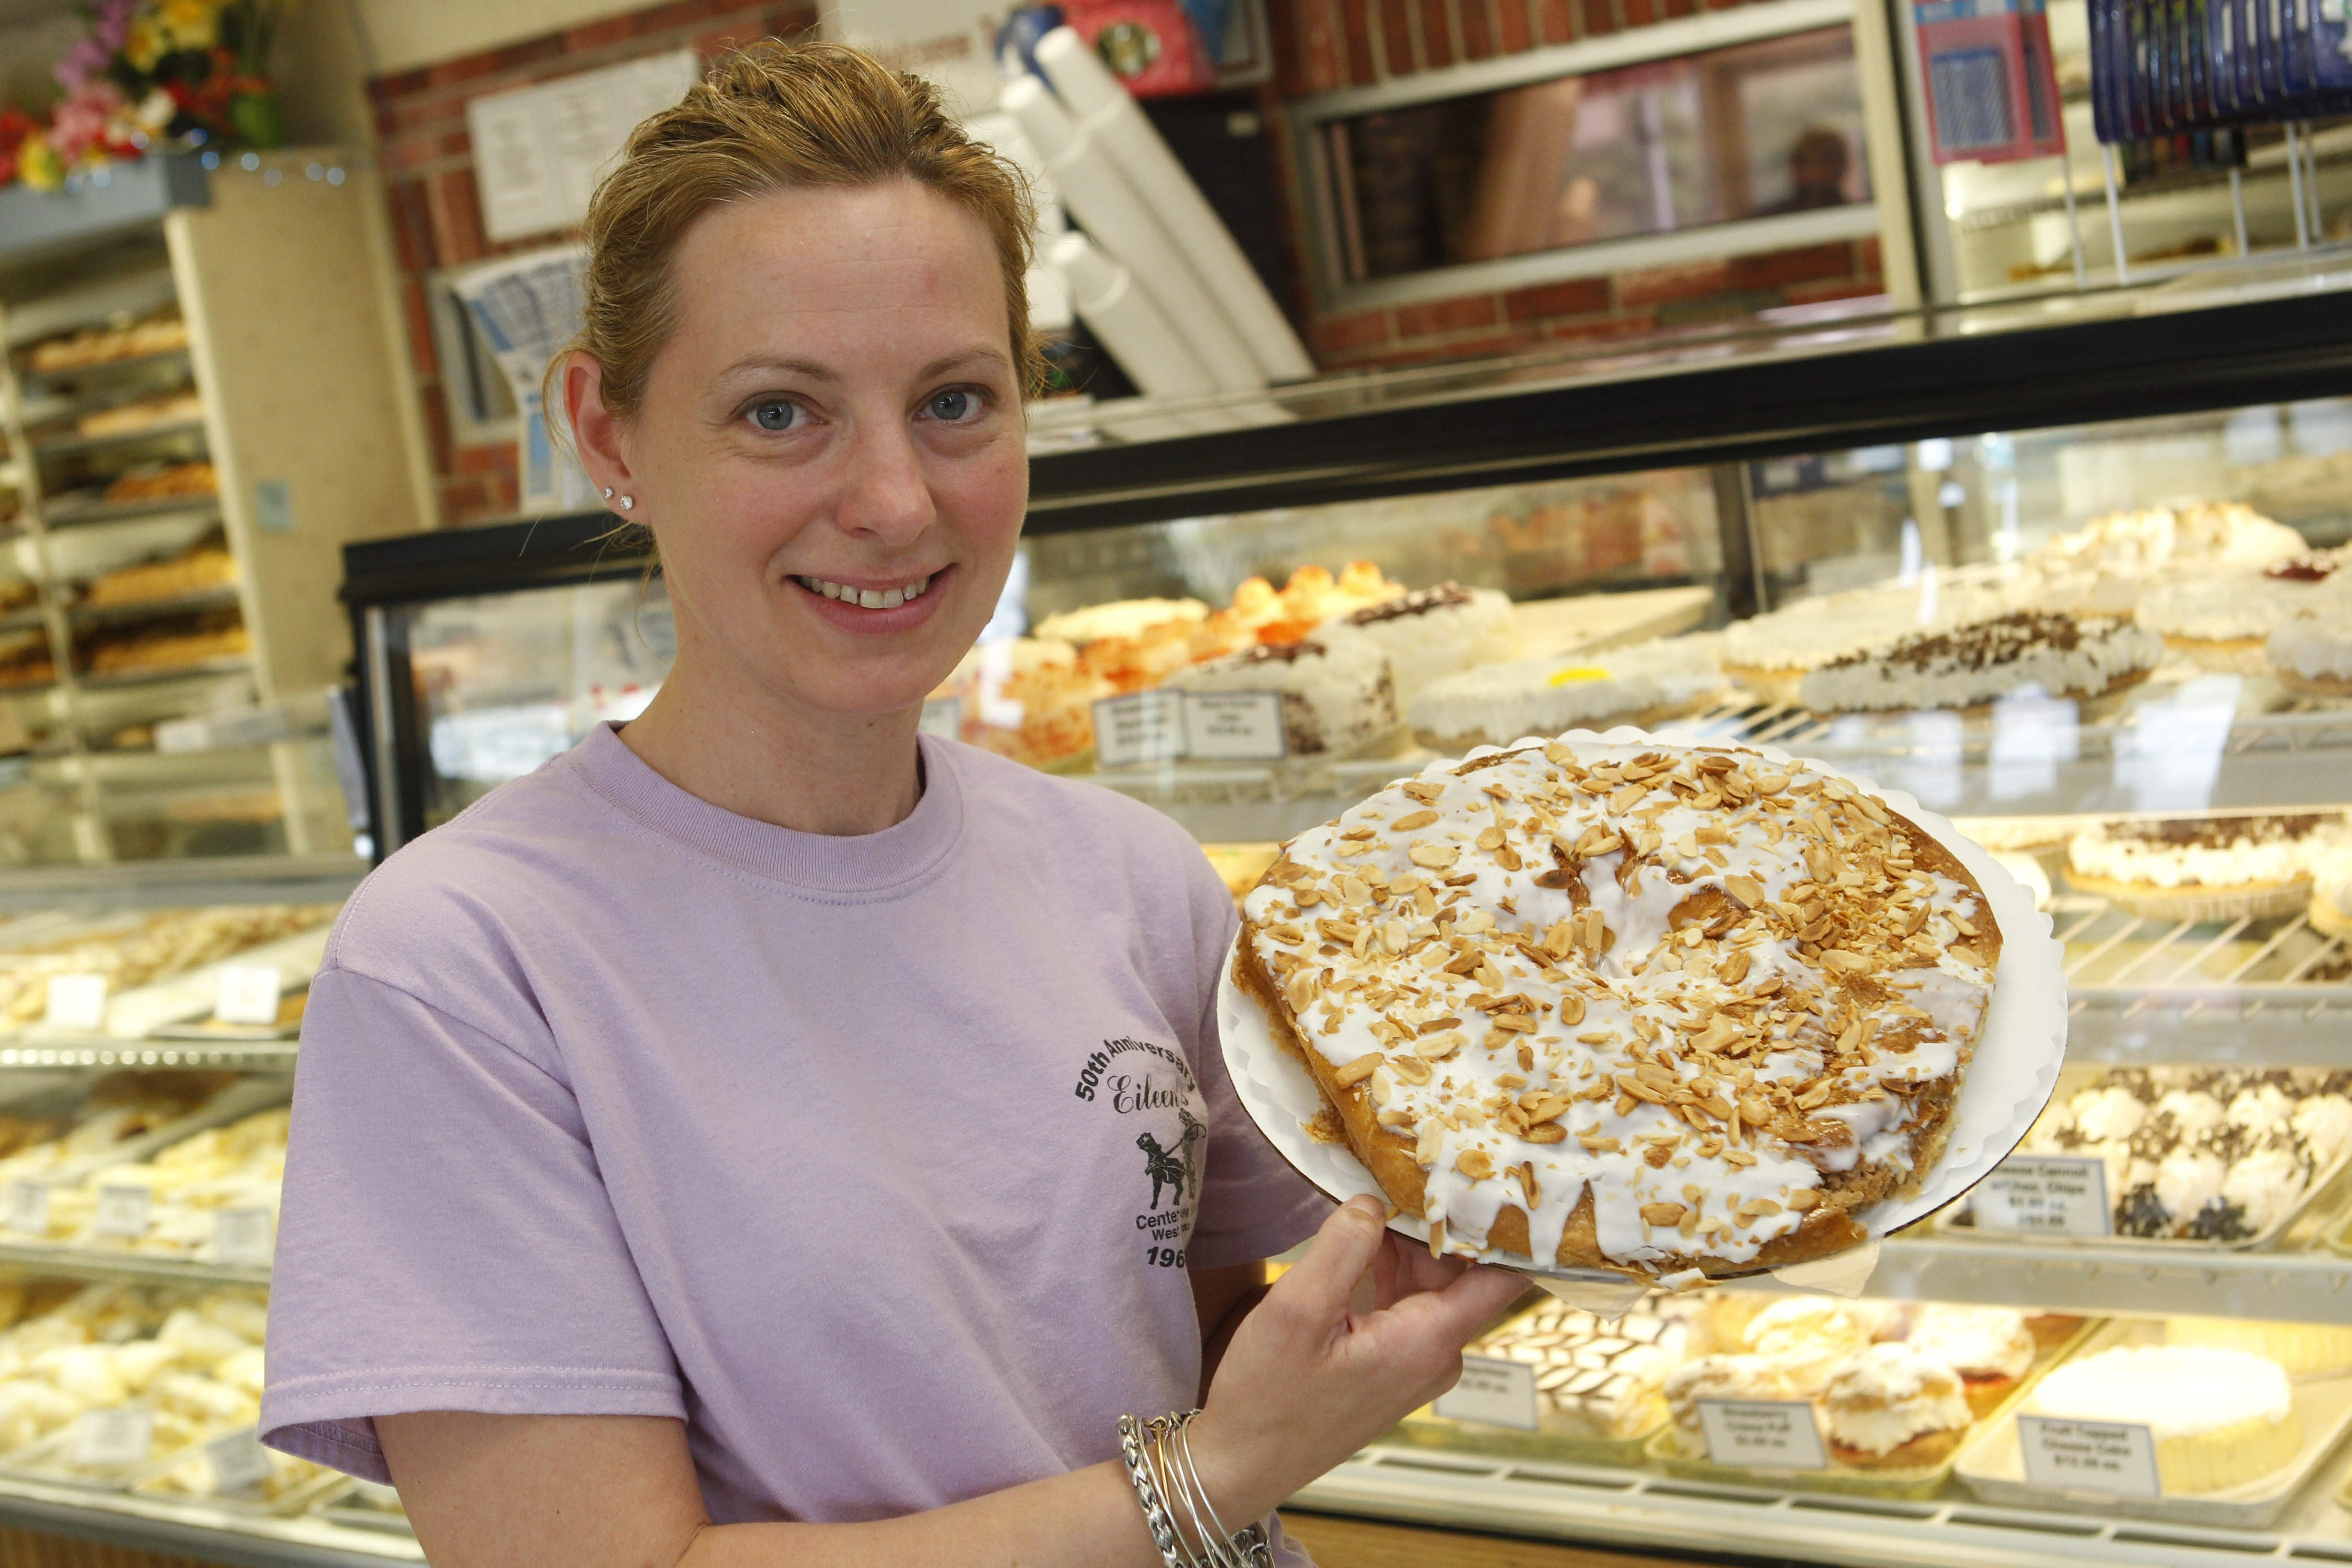 Eileen's Centerview Bakery in West Seneca is celebrating its 50th anniversary this year. Carol Frick, whose grandmother started the bakery, presents the almond ring.